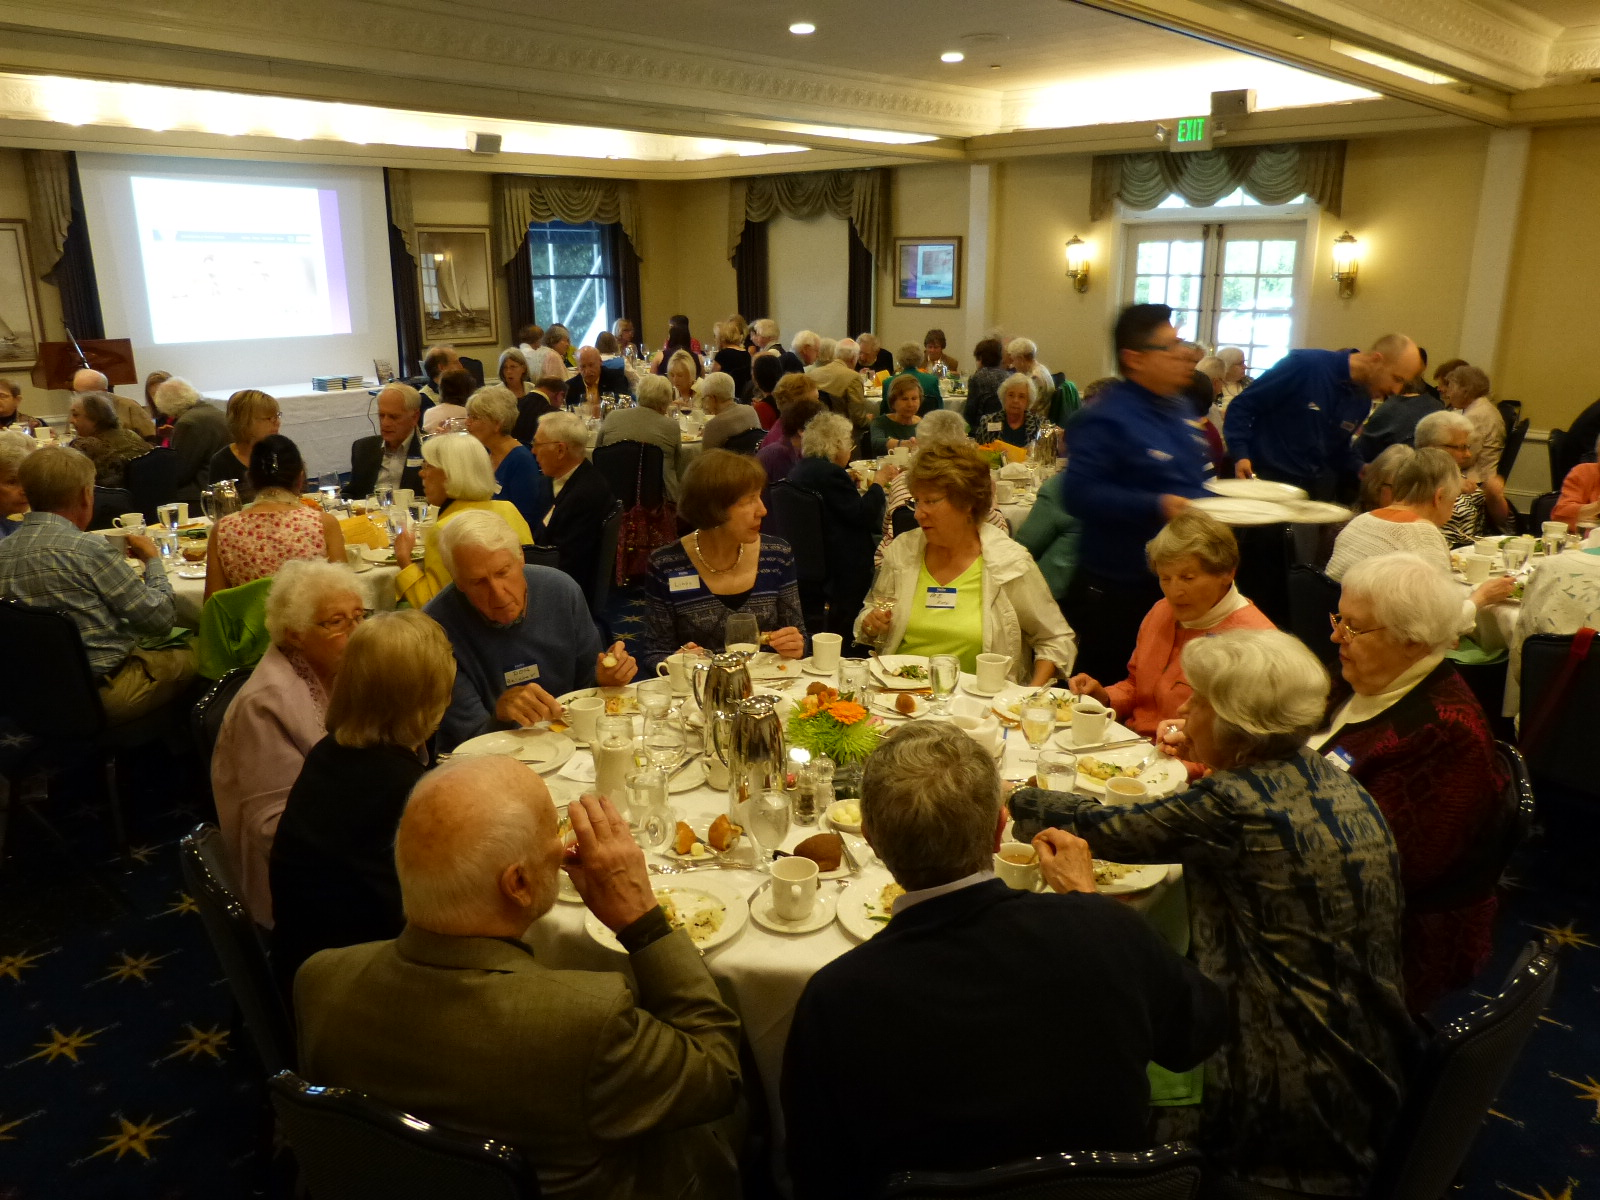 UWFA spring luncheon, May 25 | UW Faculty Auxiliary